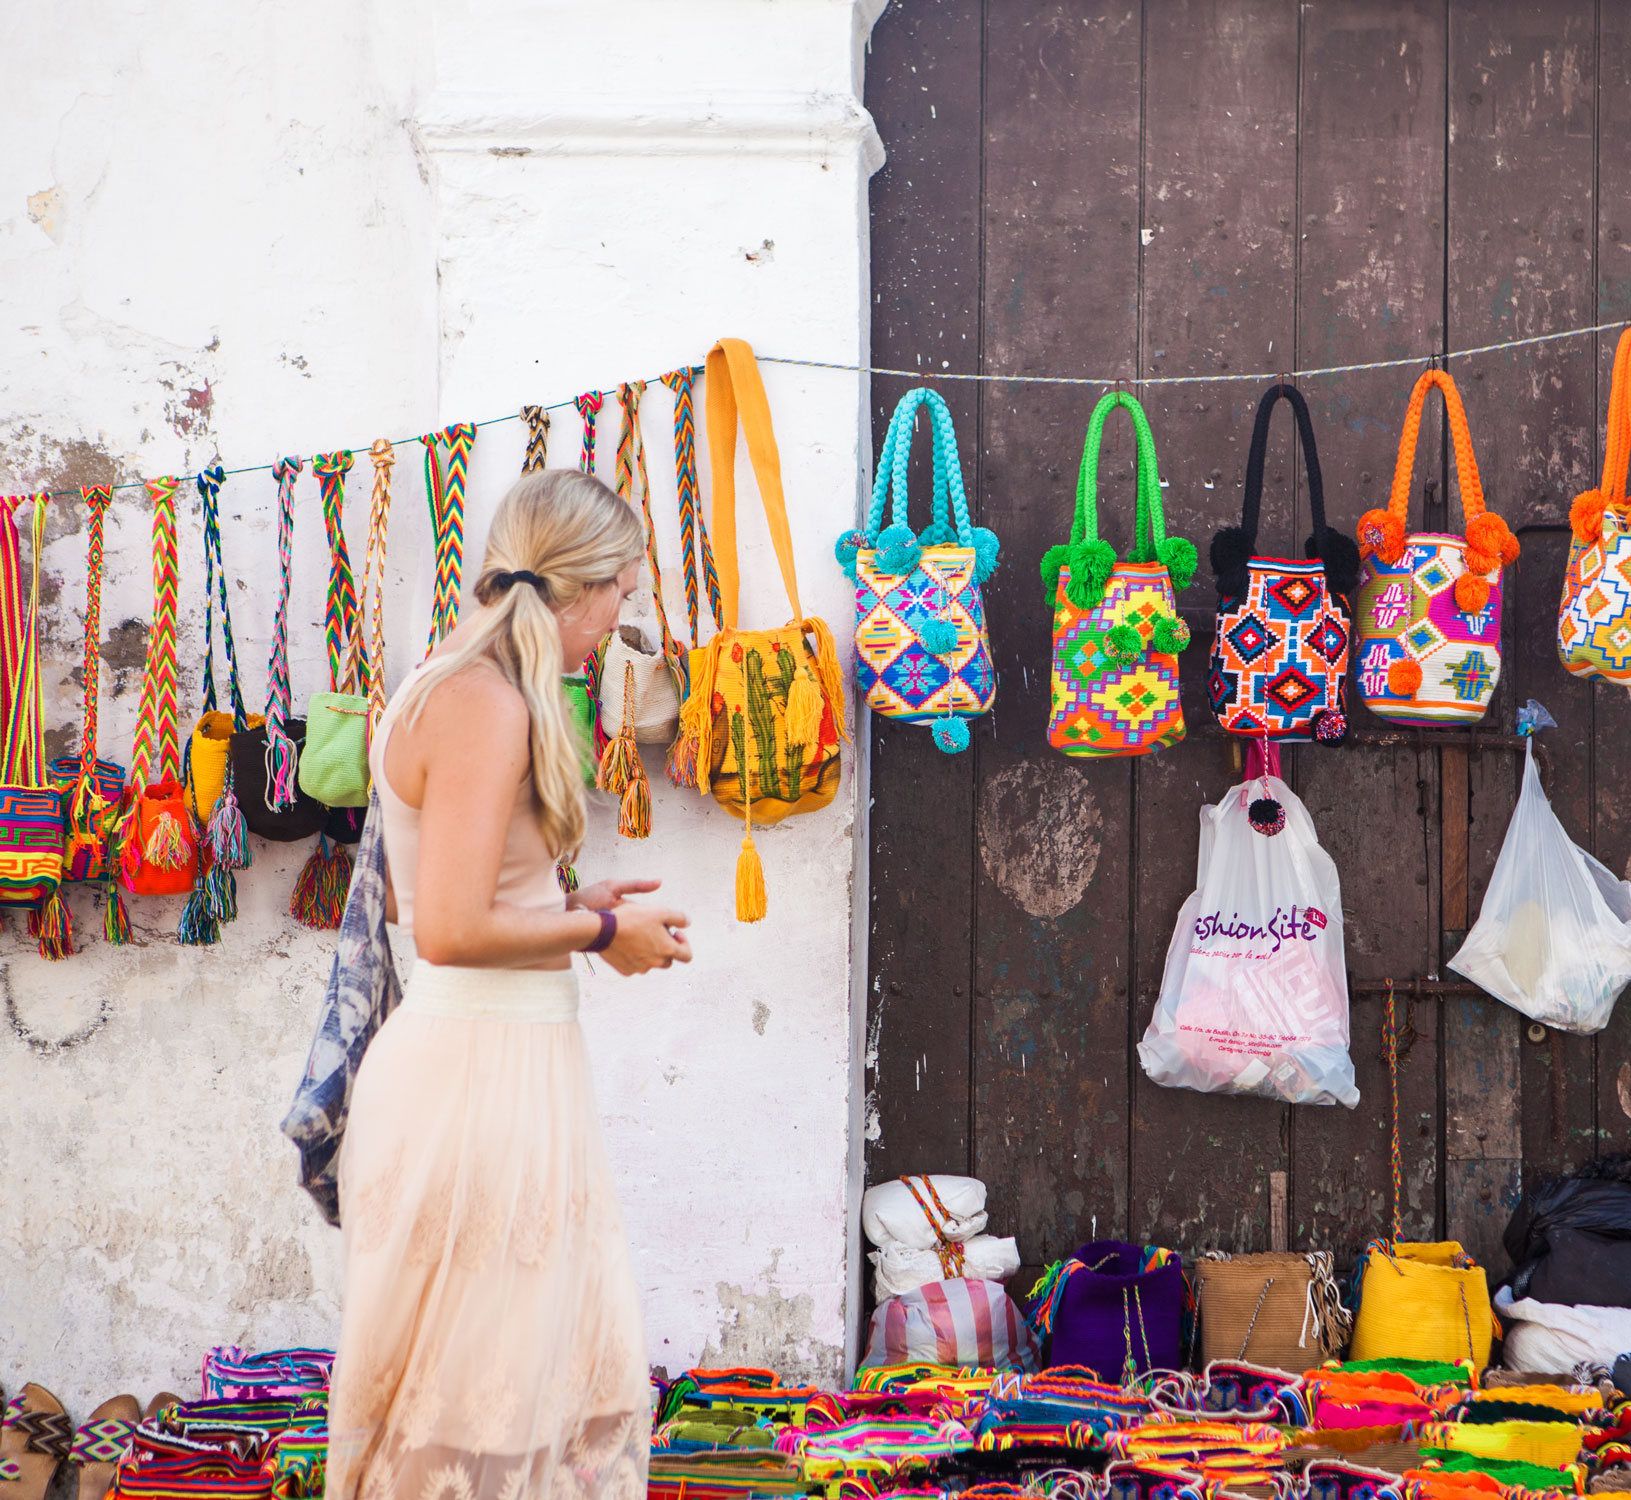 cartagena-colombia-wander-south-old-town-meg-street-shopping.jpg